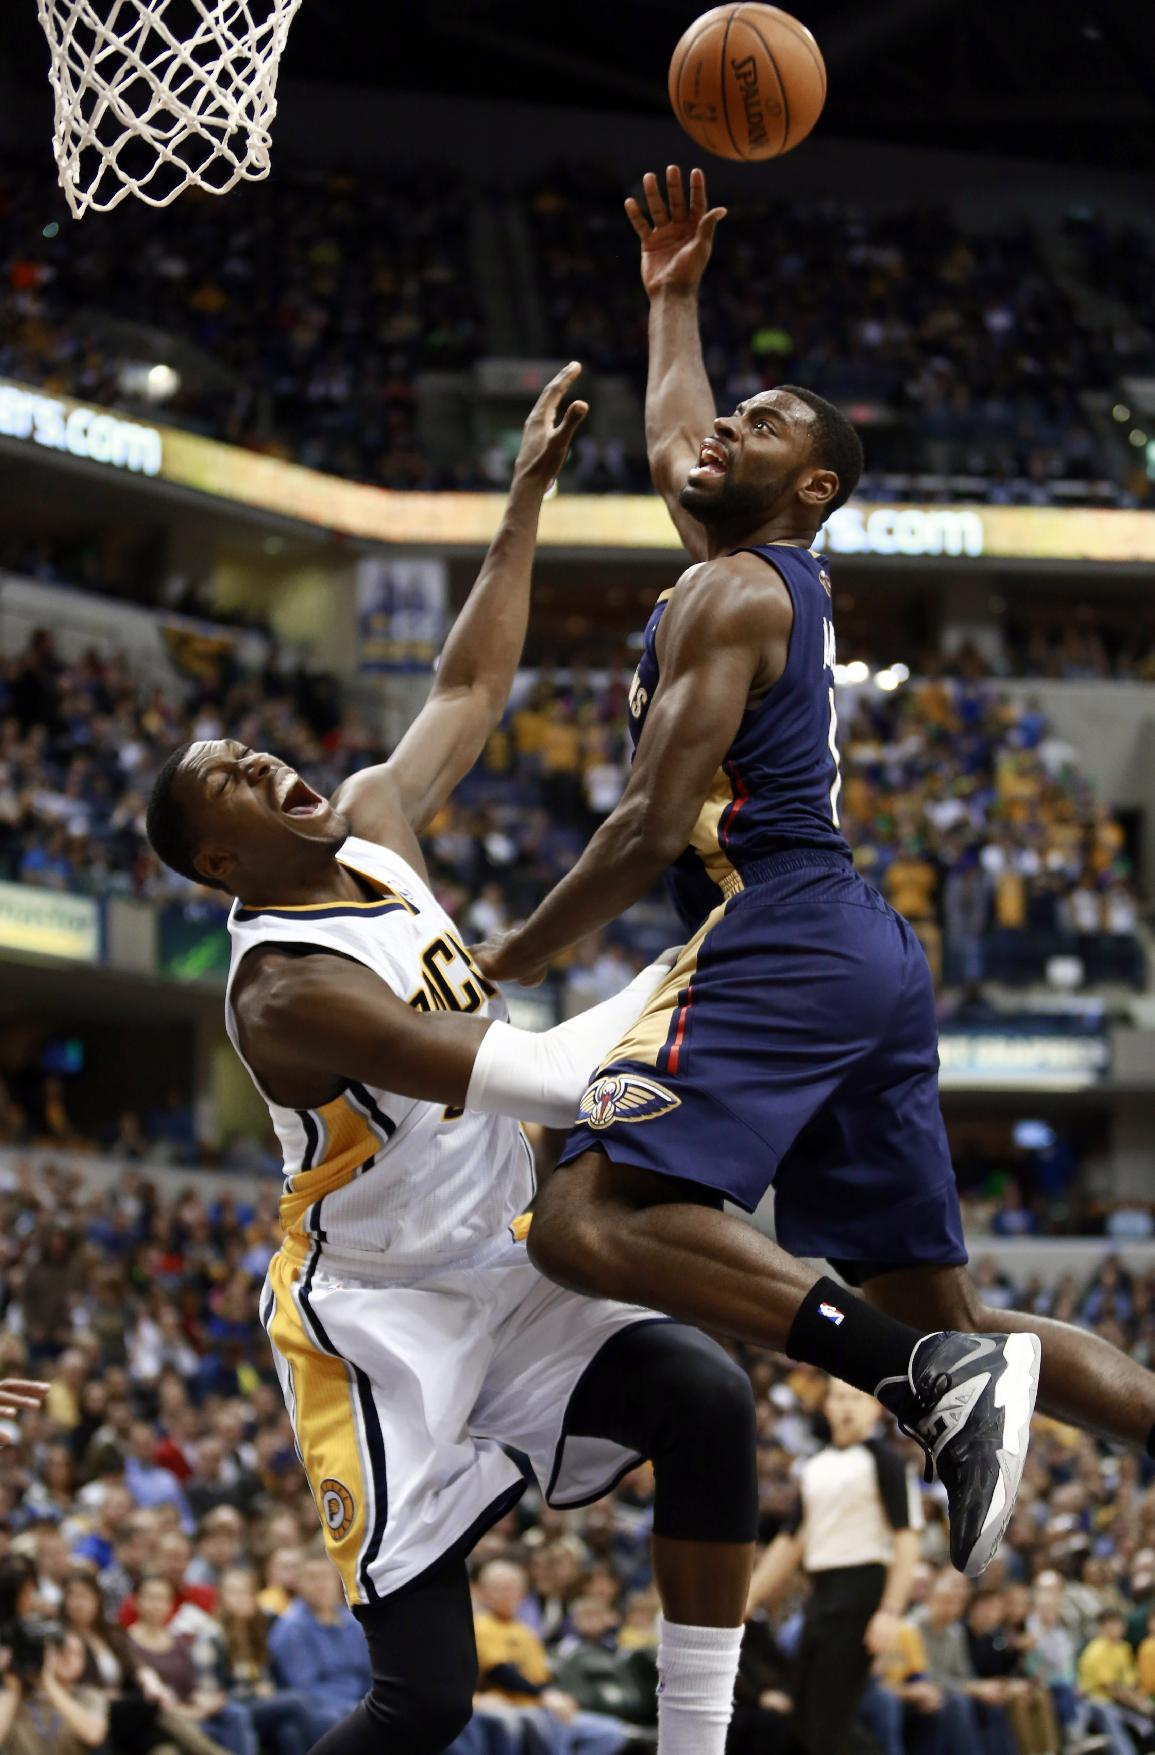 New Orleans Pelicans guard Tyreke Evans, right, puts up a shot as Indiana Pacers center Ian Mahinmi defends during the second half of an NBA basketball game in Indianapolis, Saturday, Jan. 4, 2014. The Pacers won 99-82